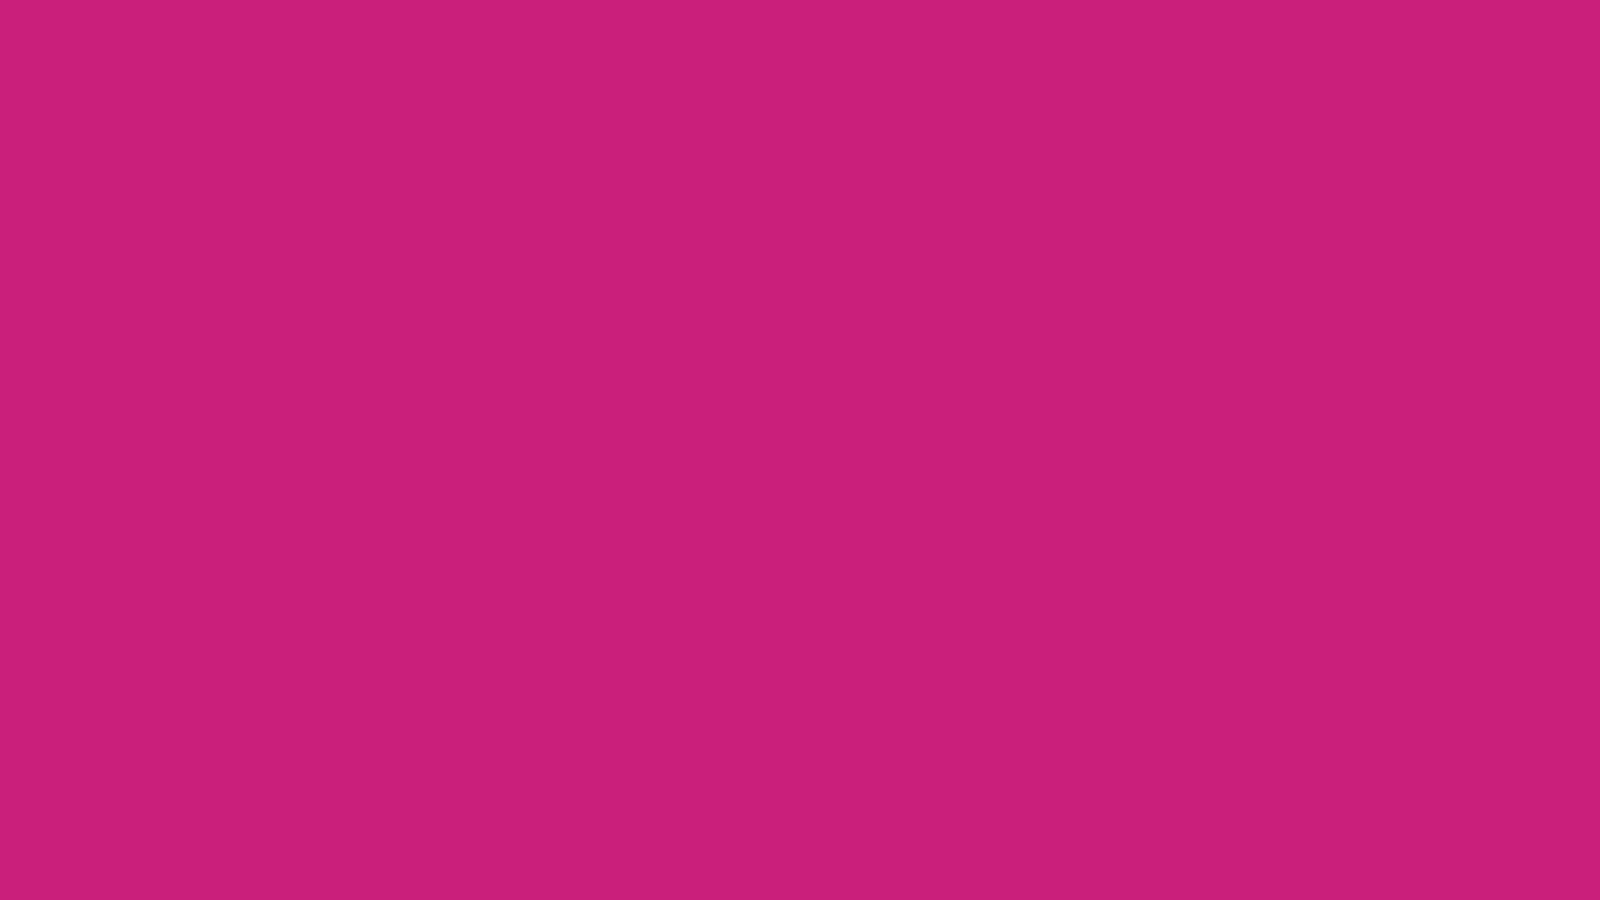 1600x900 Magenta Dye Solid Color Background